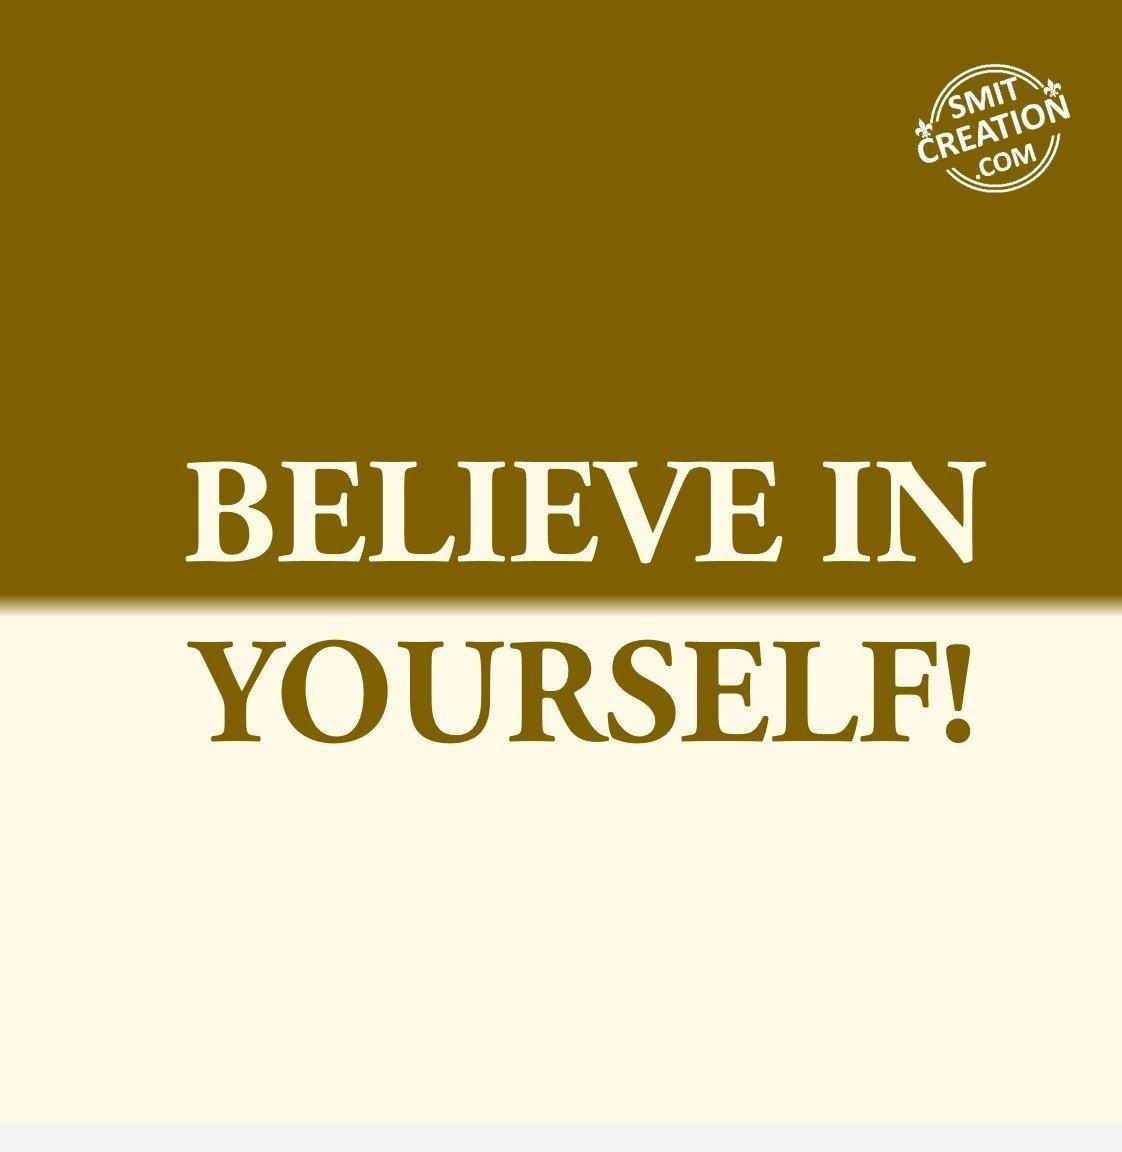 BELIEVE IN YOURSELF! SmitCreation Com